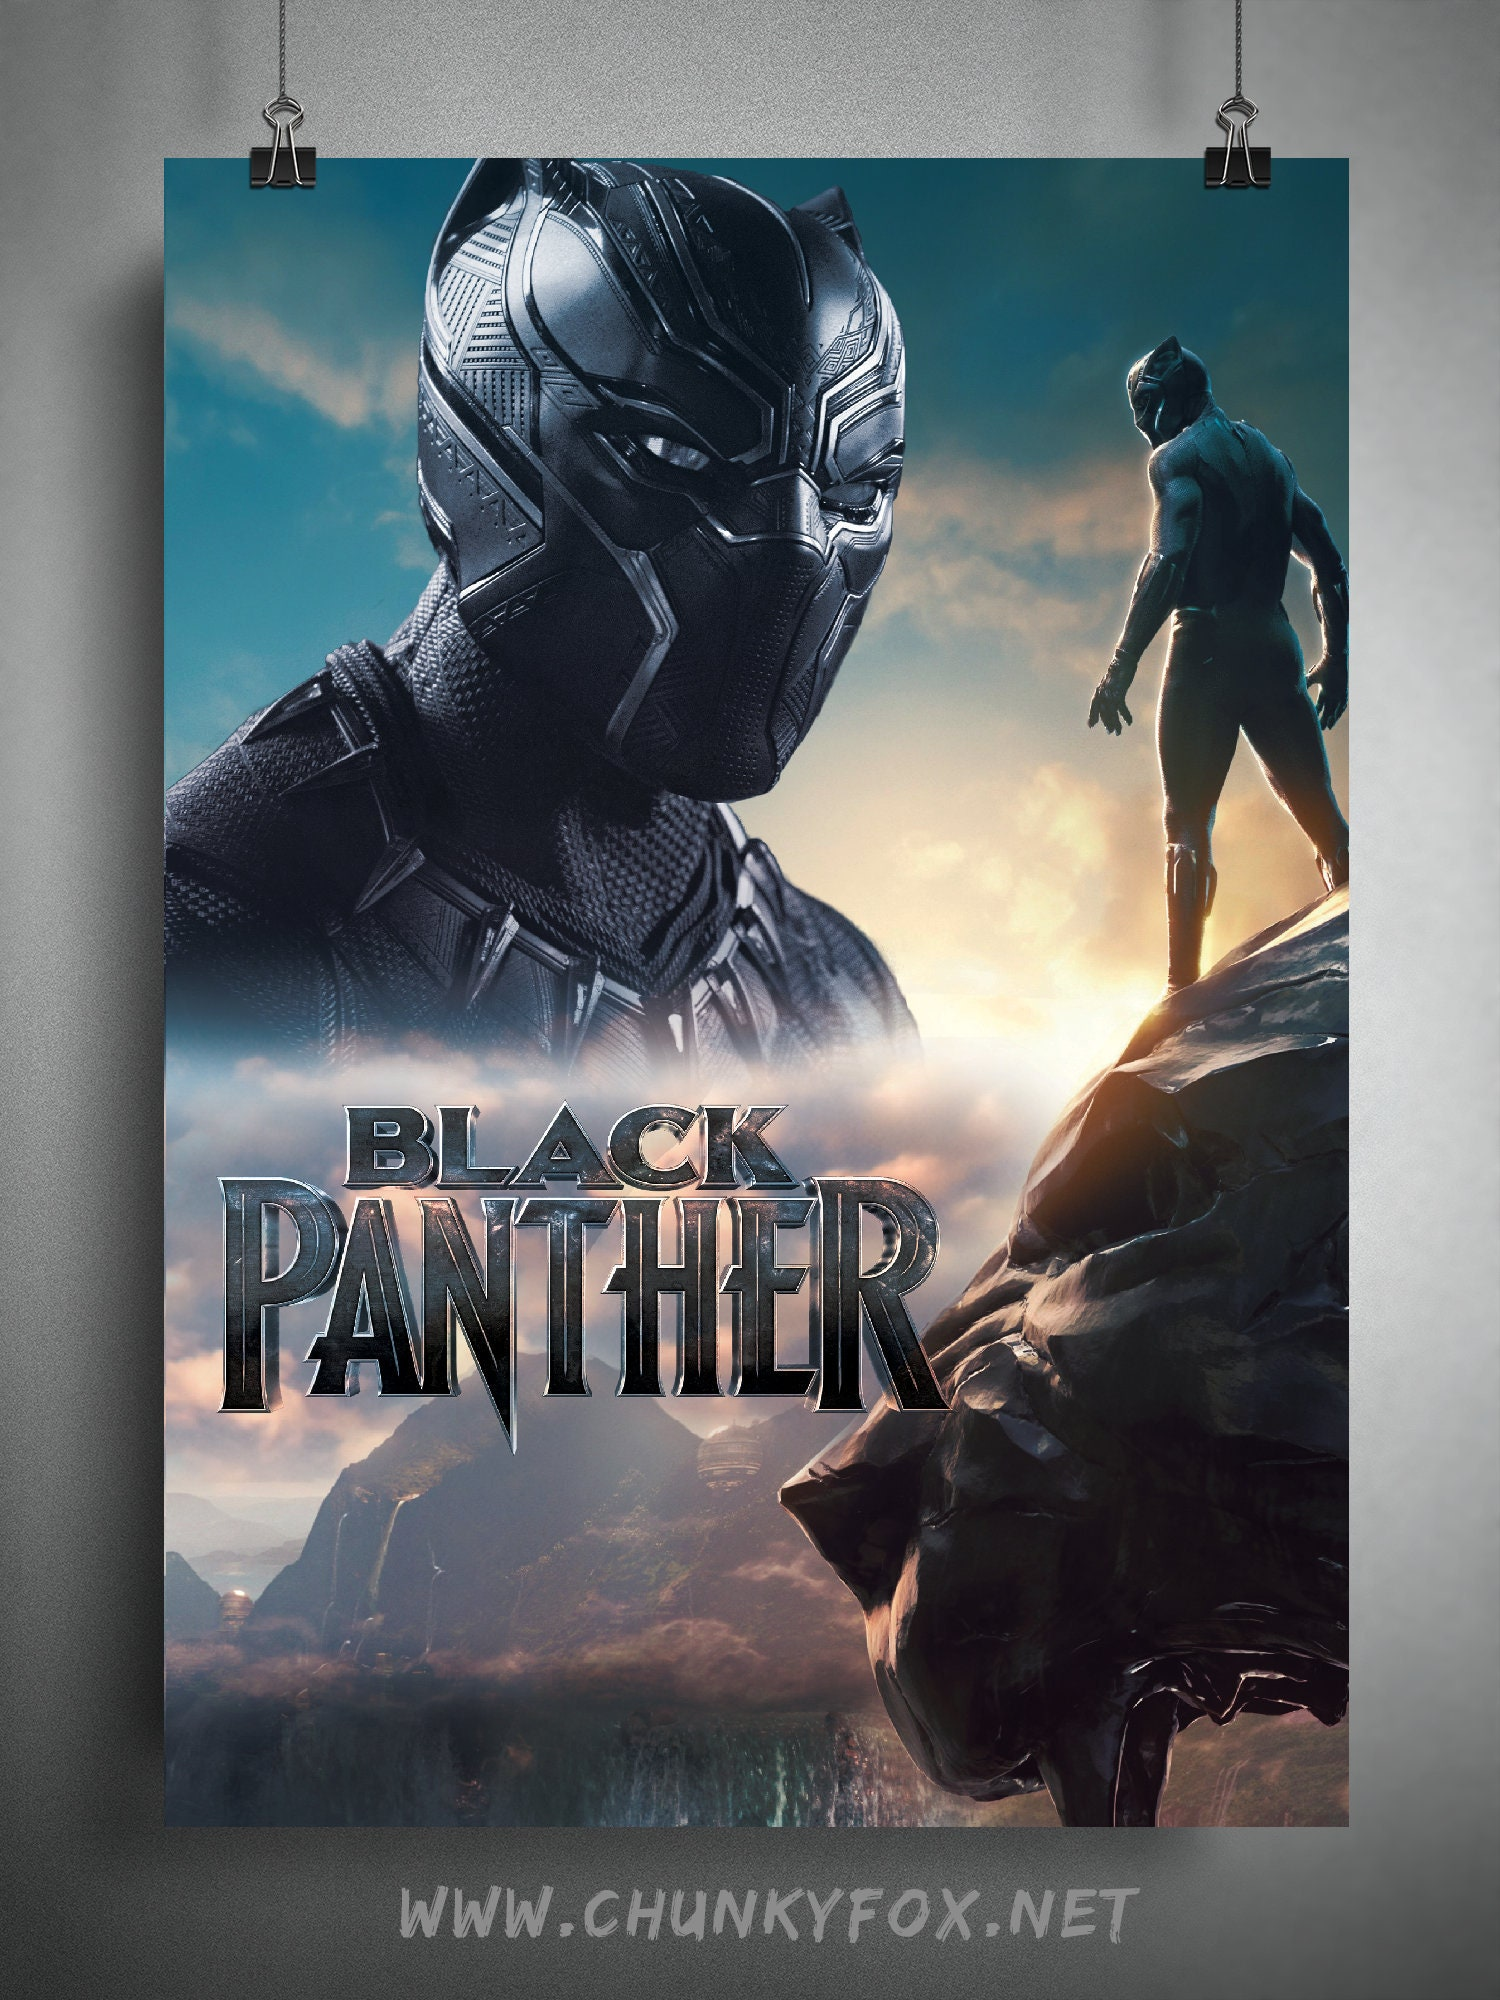 Black Panther Poster The Black Panther Movie Art Poster